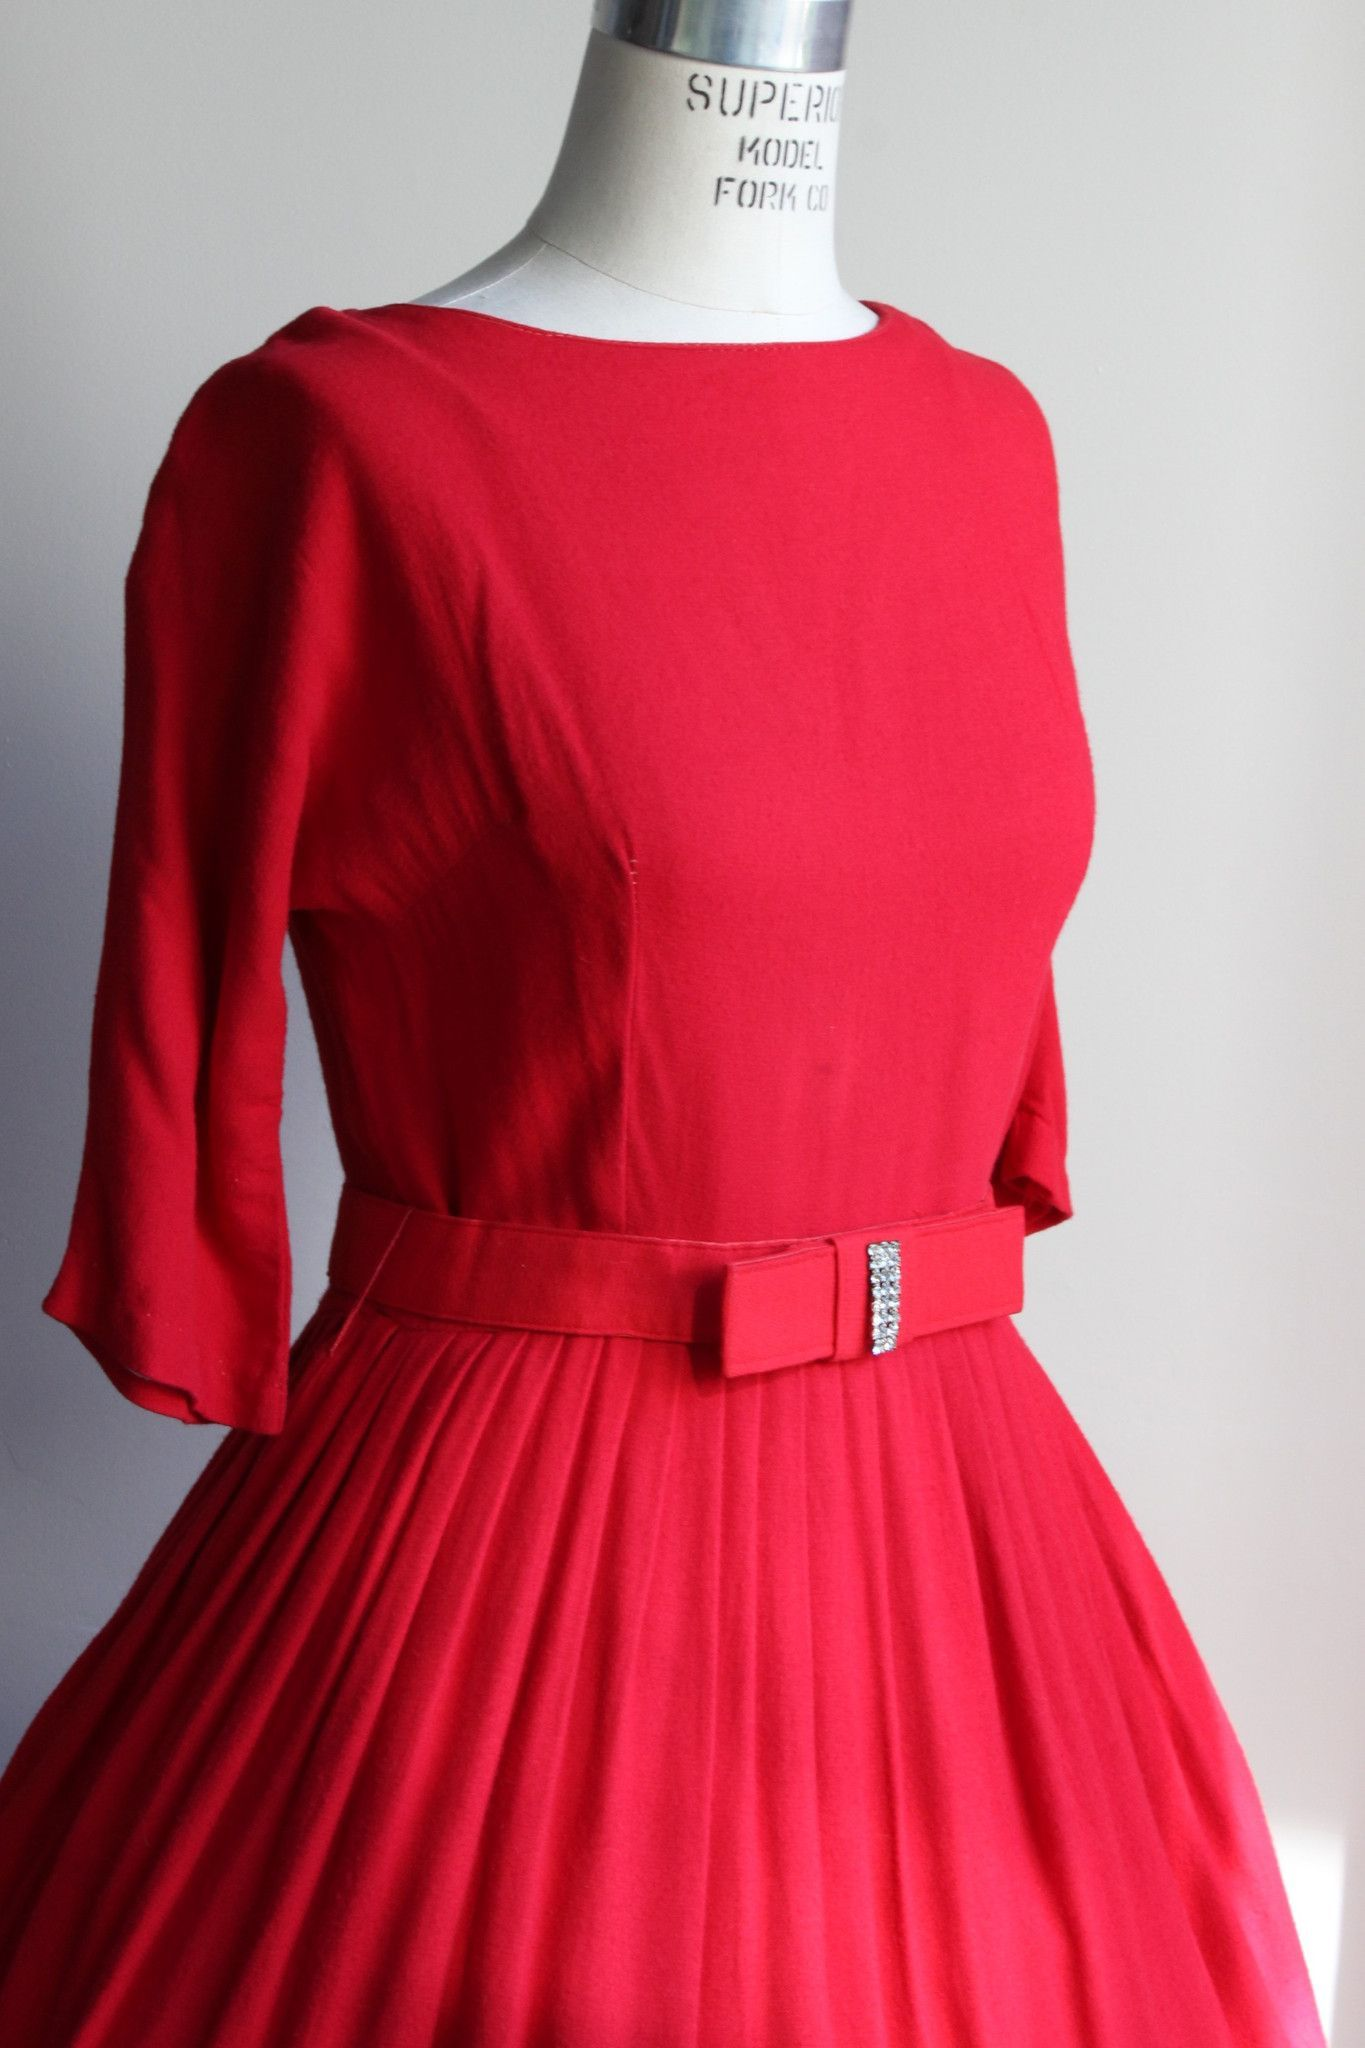 Vintage 1950s Red Wool Party Dress with Rhinestone Belt